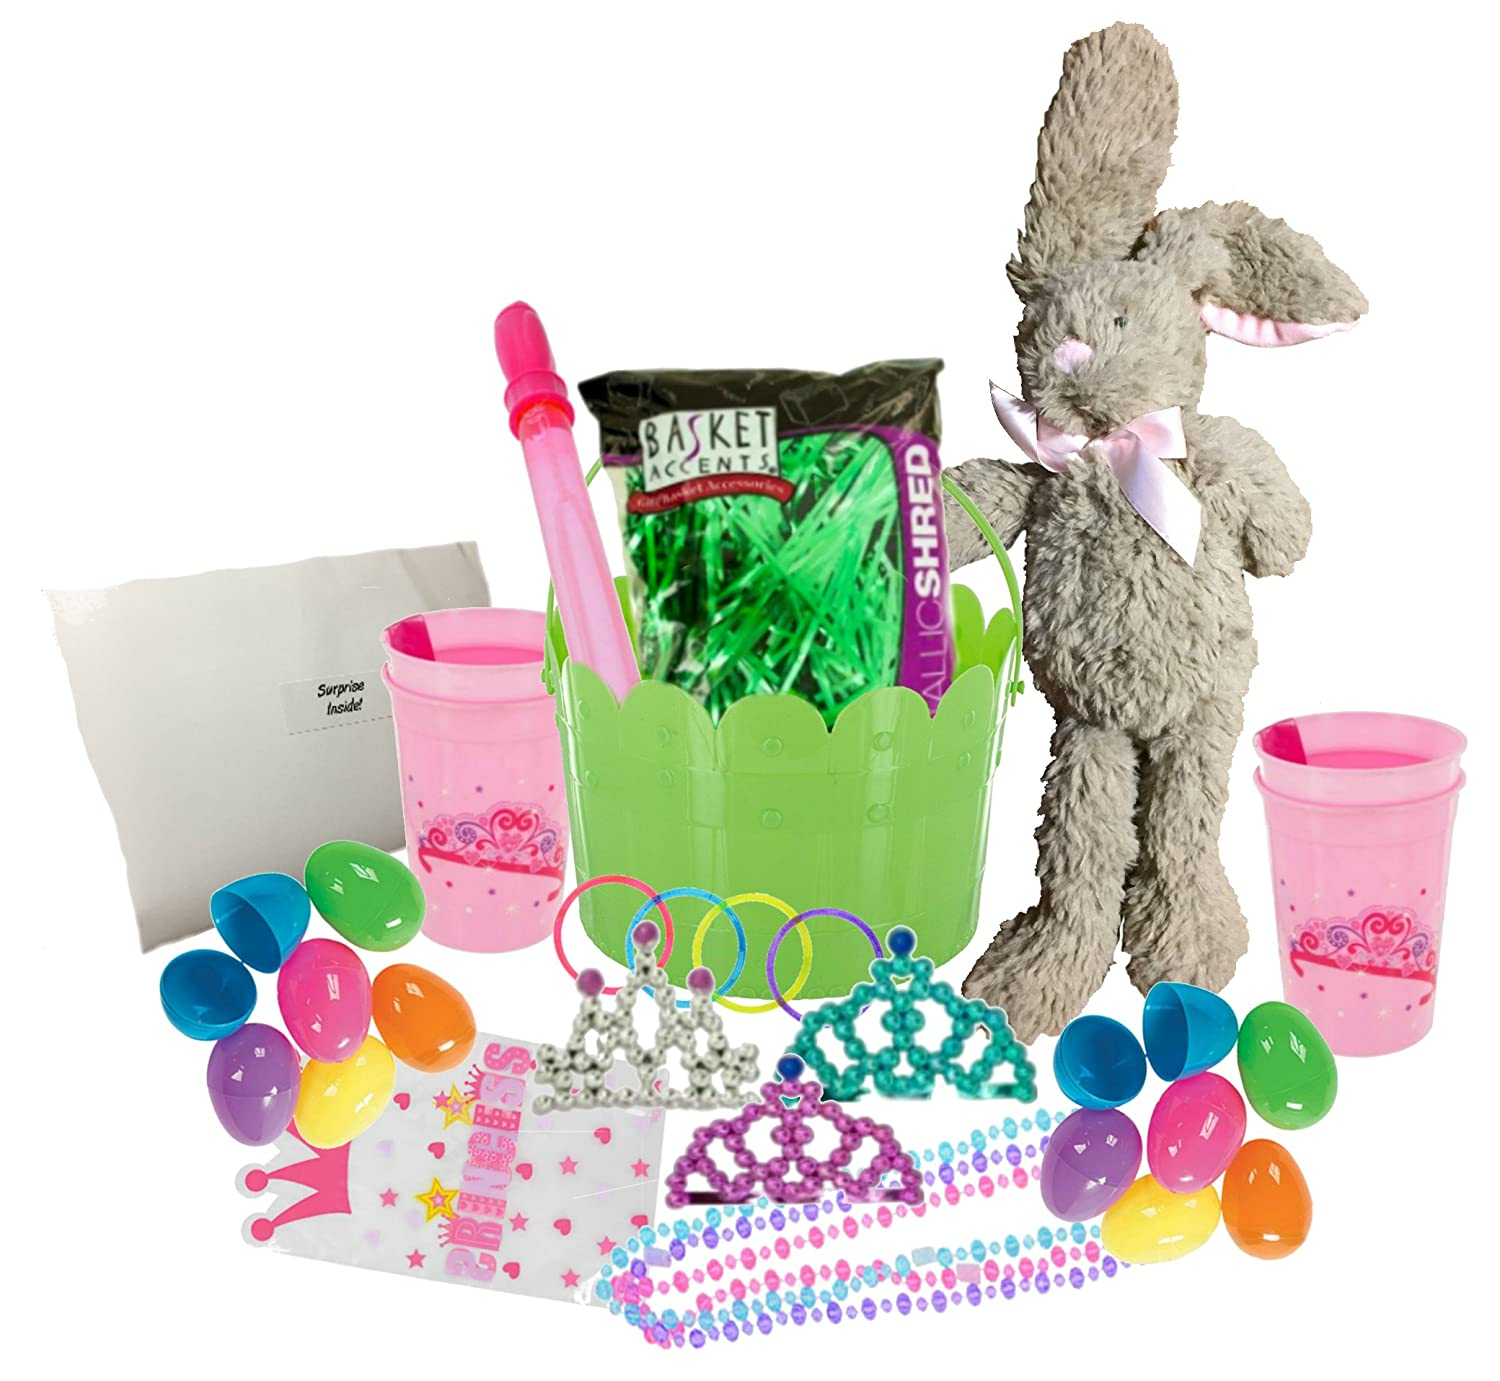 Princess Easter Basket Egg Hunt Kit for Girls, Toddlers, Children & Other Kids Indoor and Outdoor Use Includes A Bunny, Basket, Plastic Easter Eggs, Tiaras, Pink Princess Cups, Bubbles & So Much More